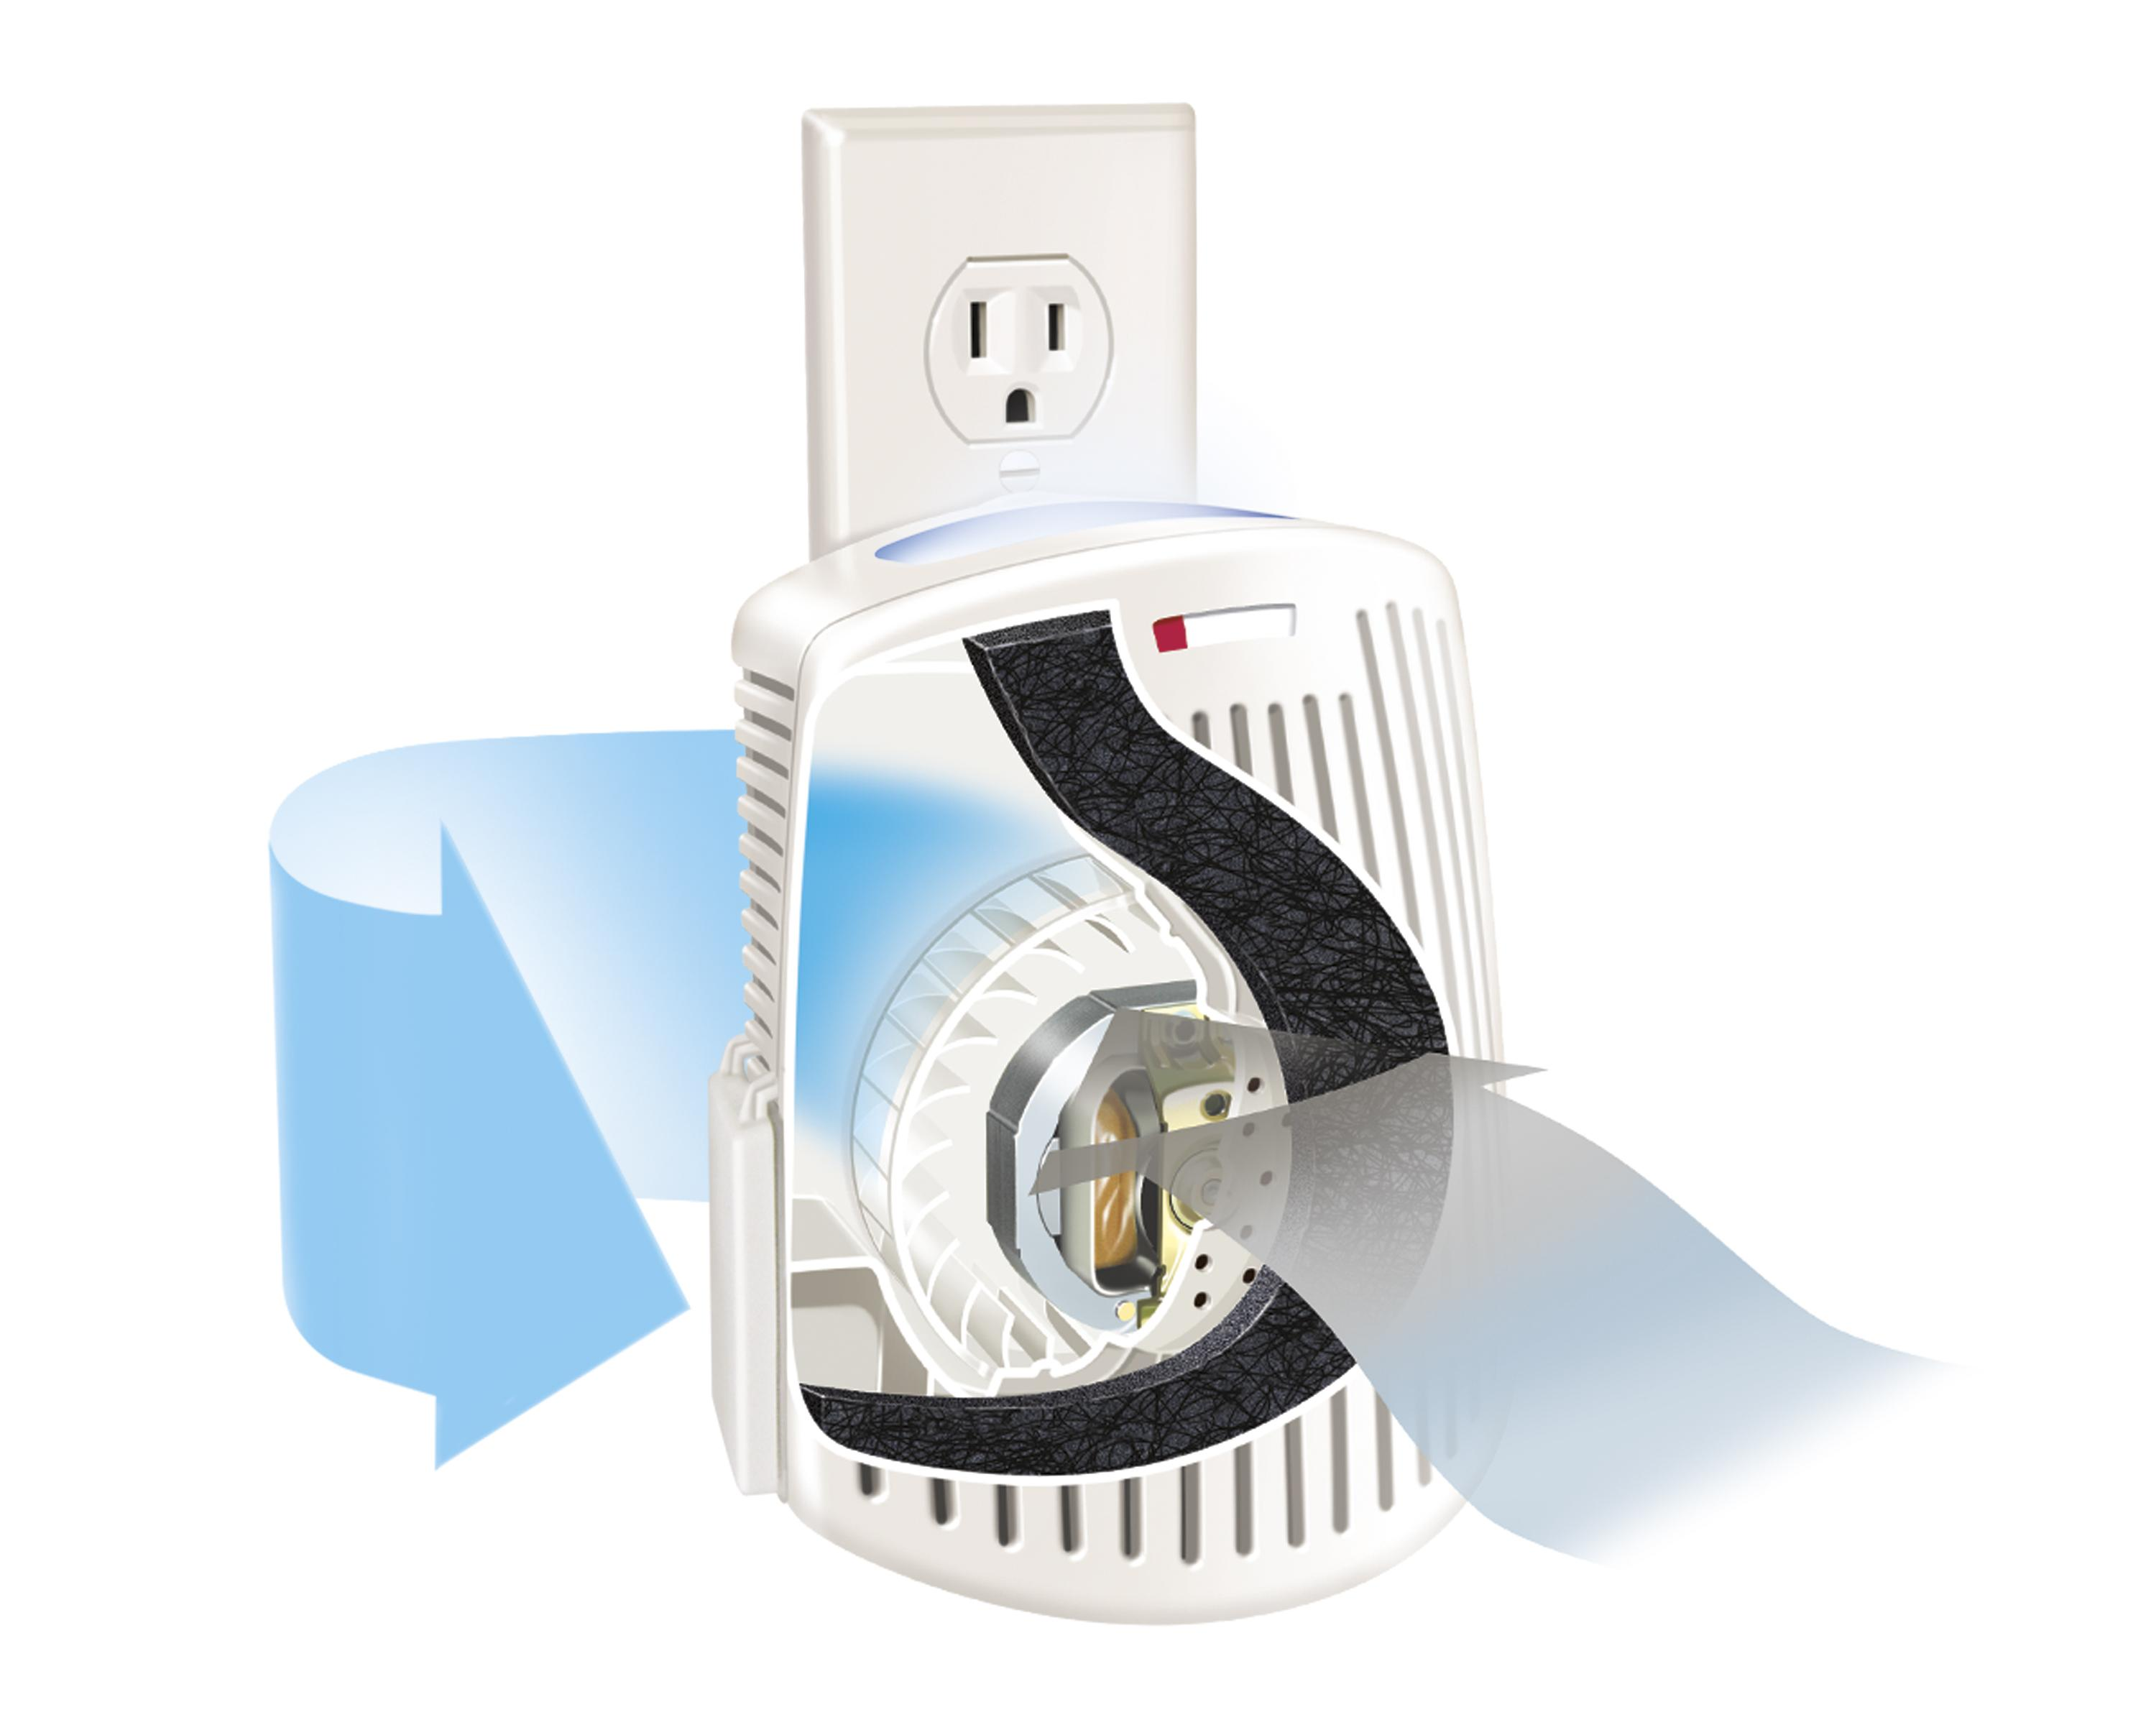 Amazoncom Hamilton Beach TrueAir Plug Mount Odor Eliminator - Bathroom odor